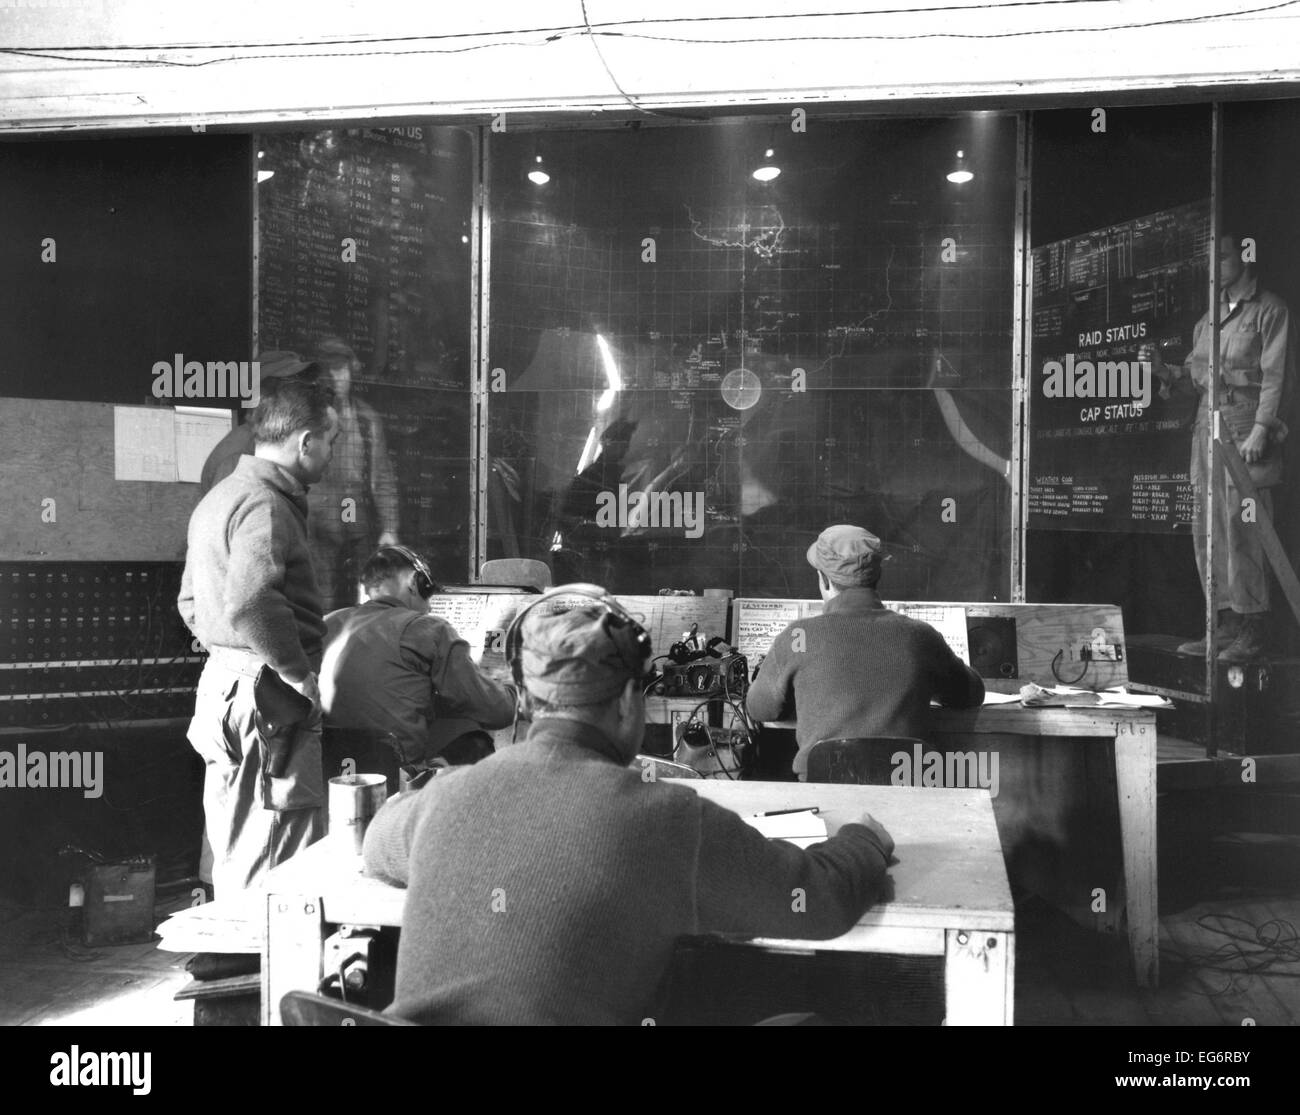 Tactical air control center operated by Marines at Hamhung, to support break-out of troops from Chosin Reservoir. - Stock Image